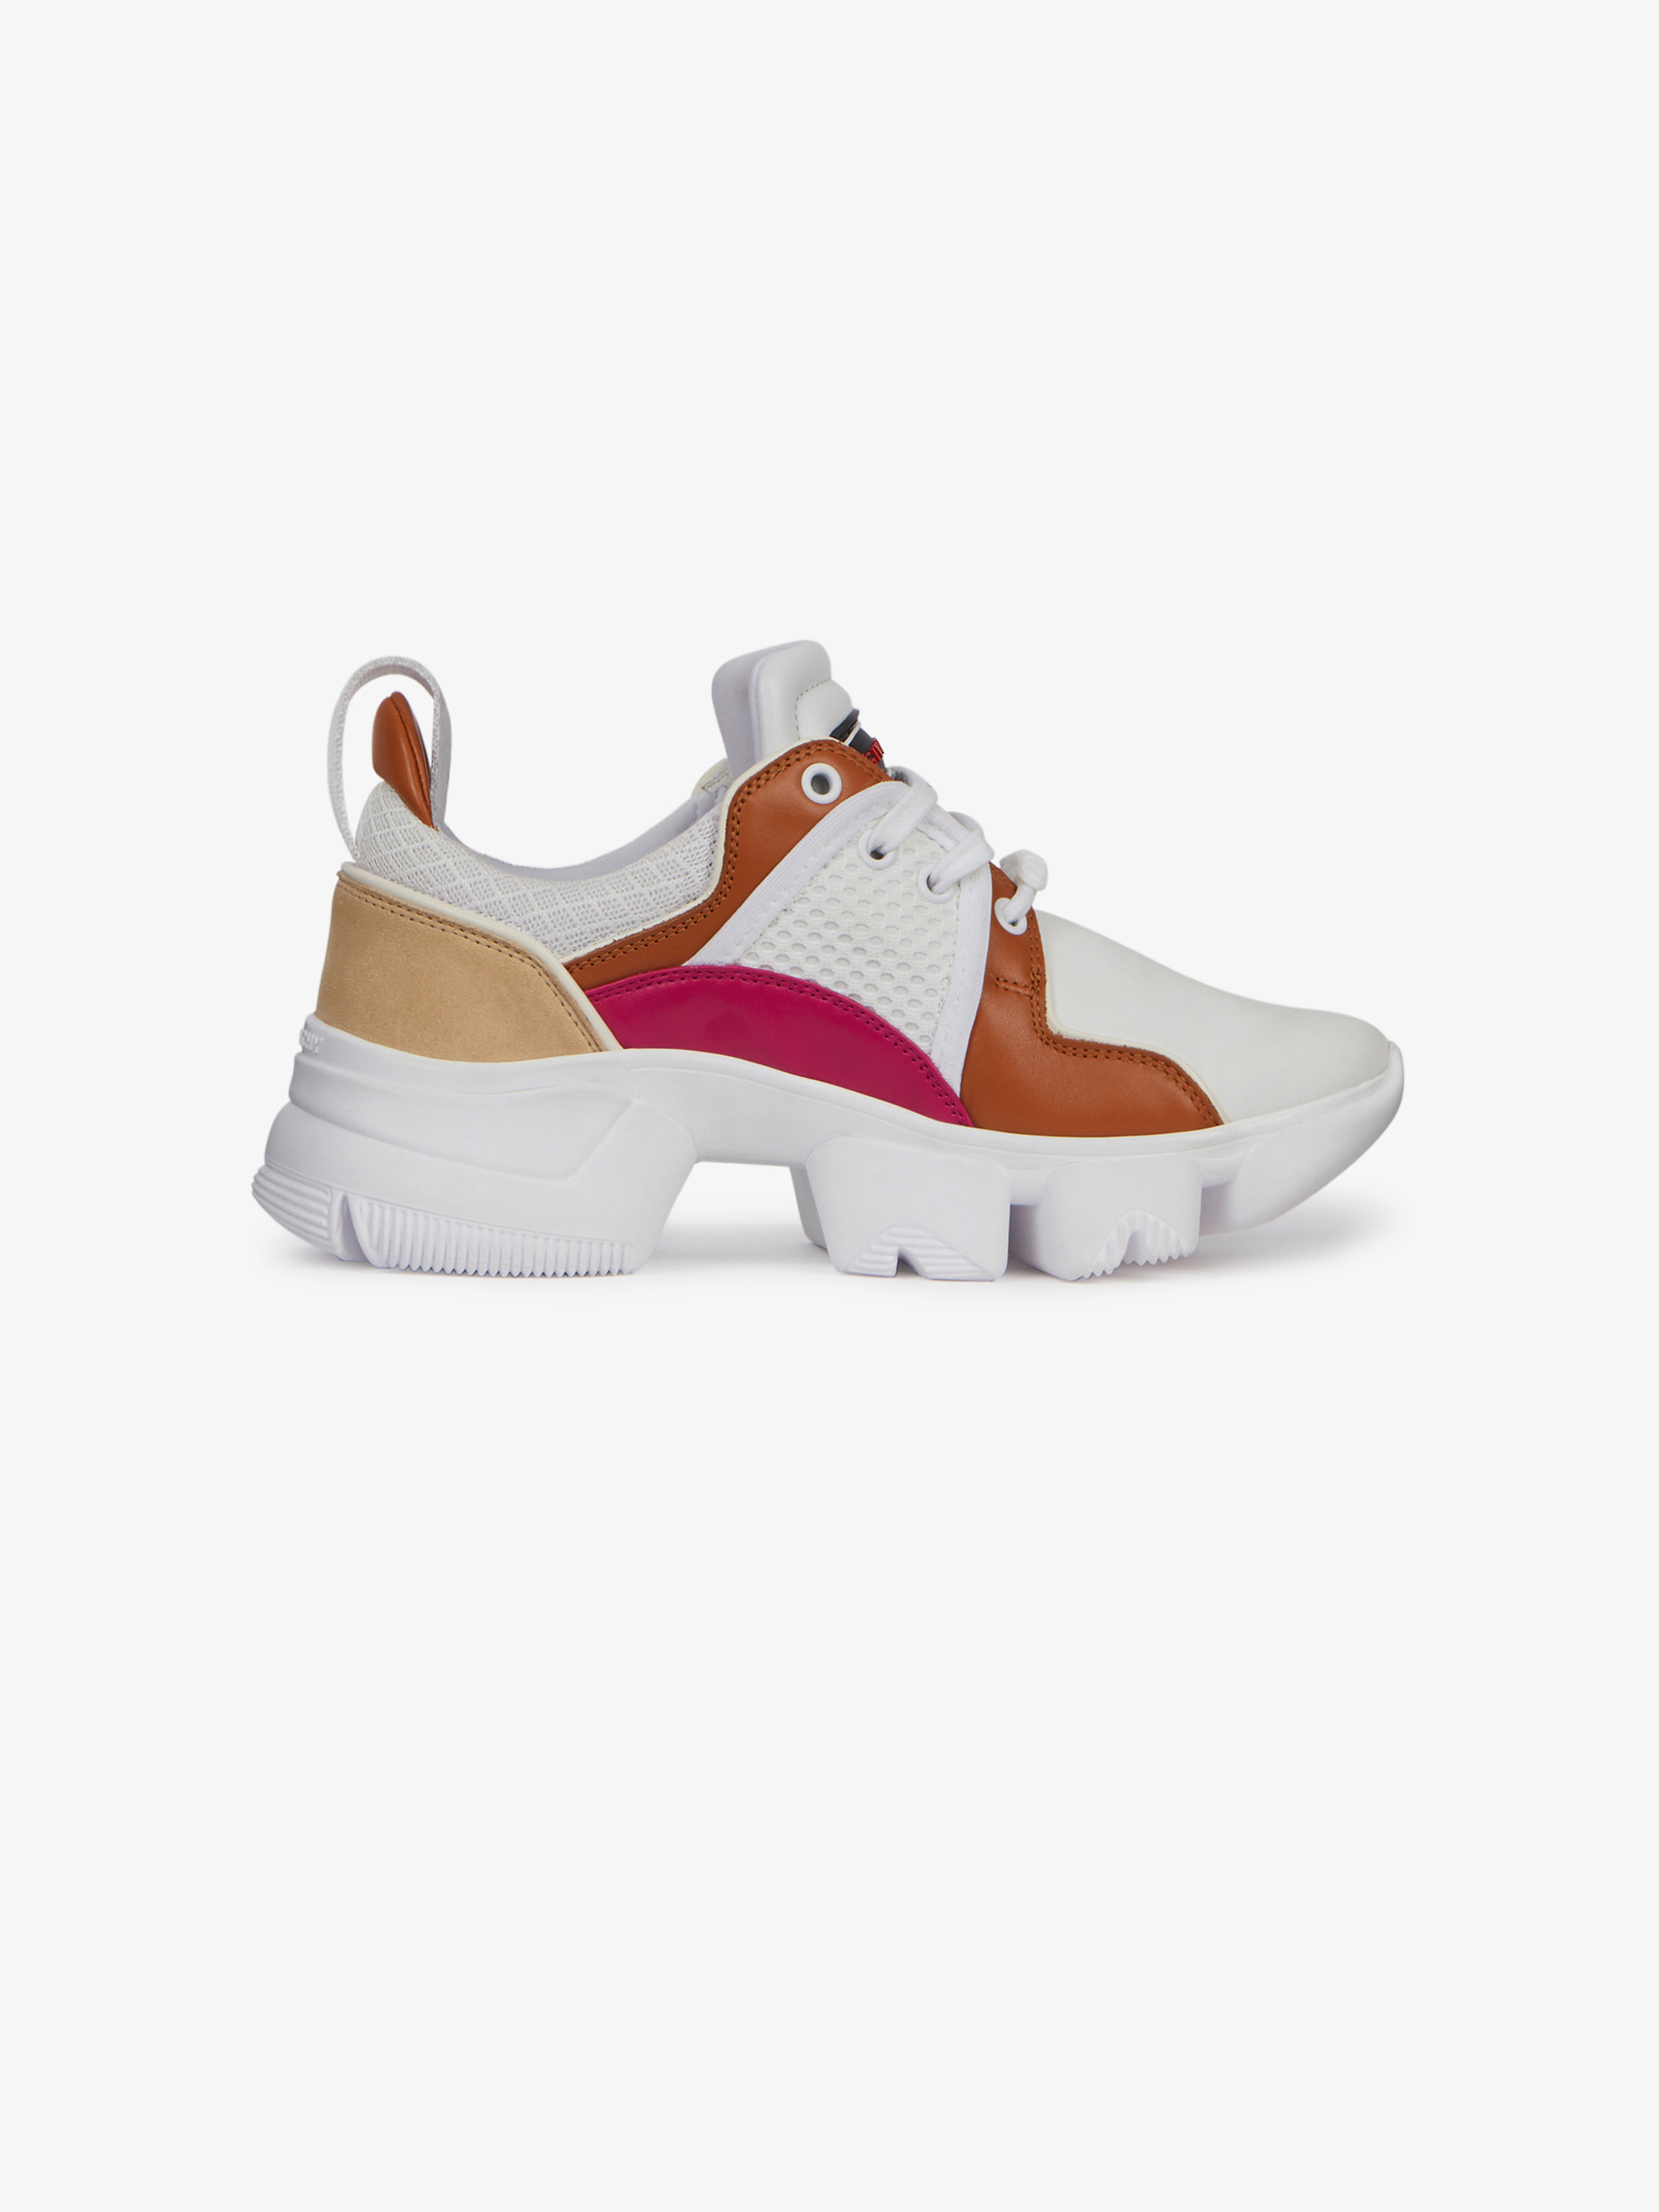 Low JAW sneakers in neoprene and leather